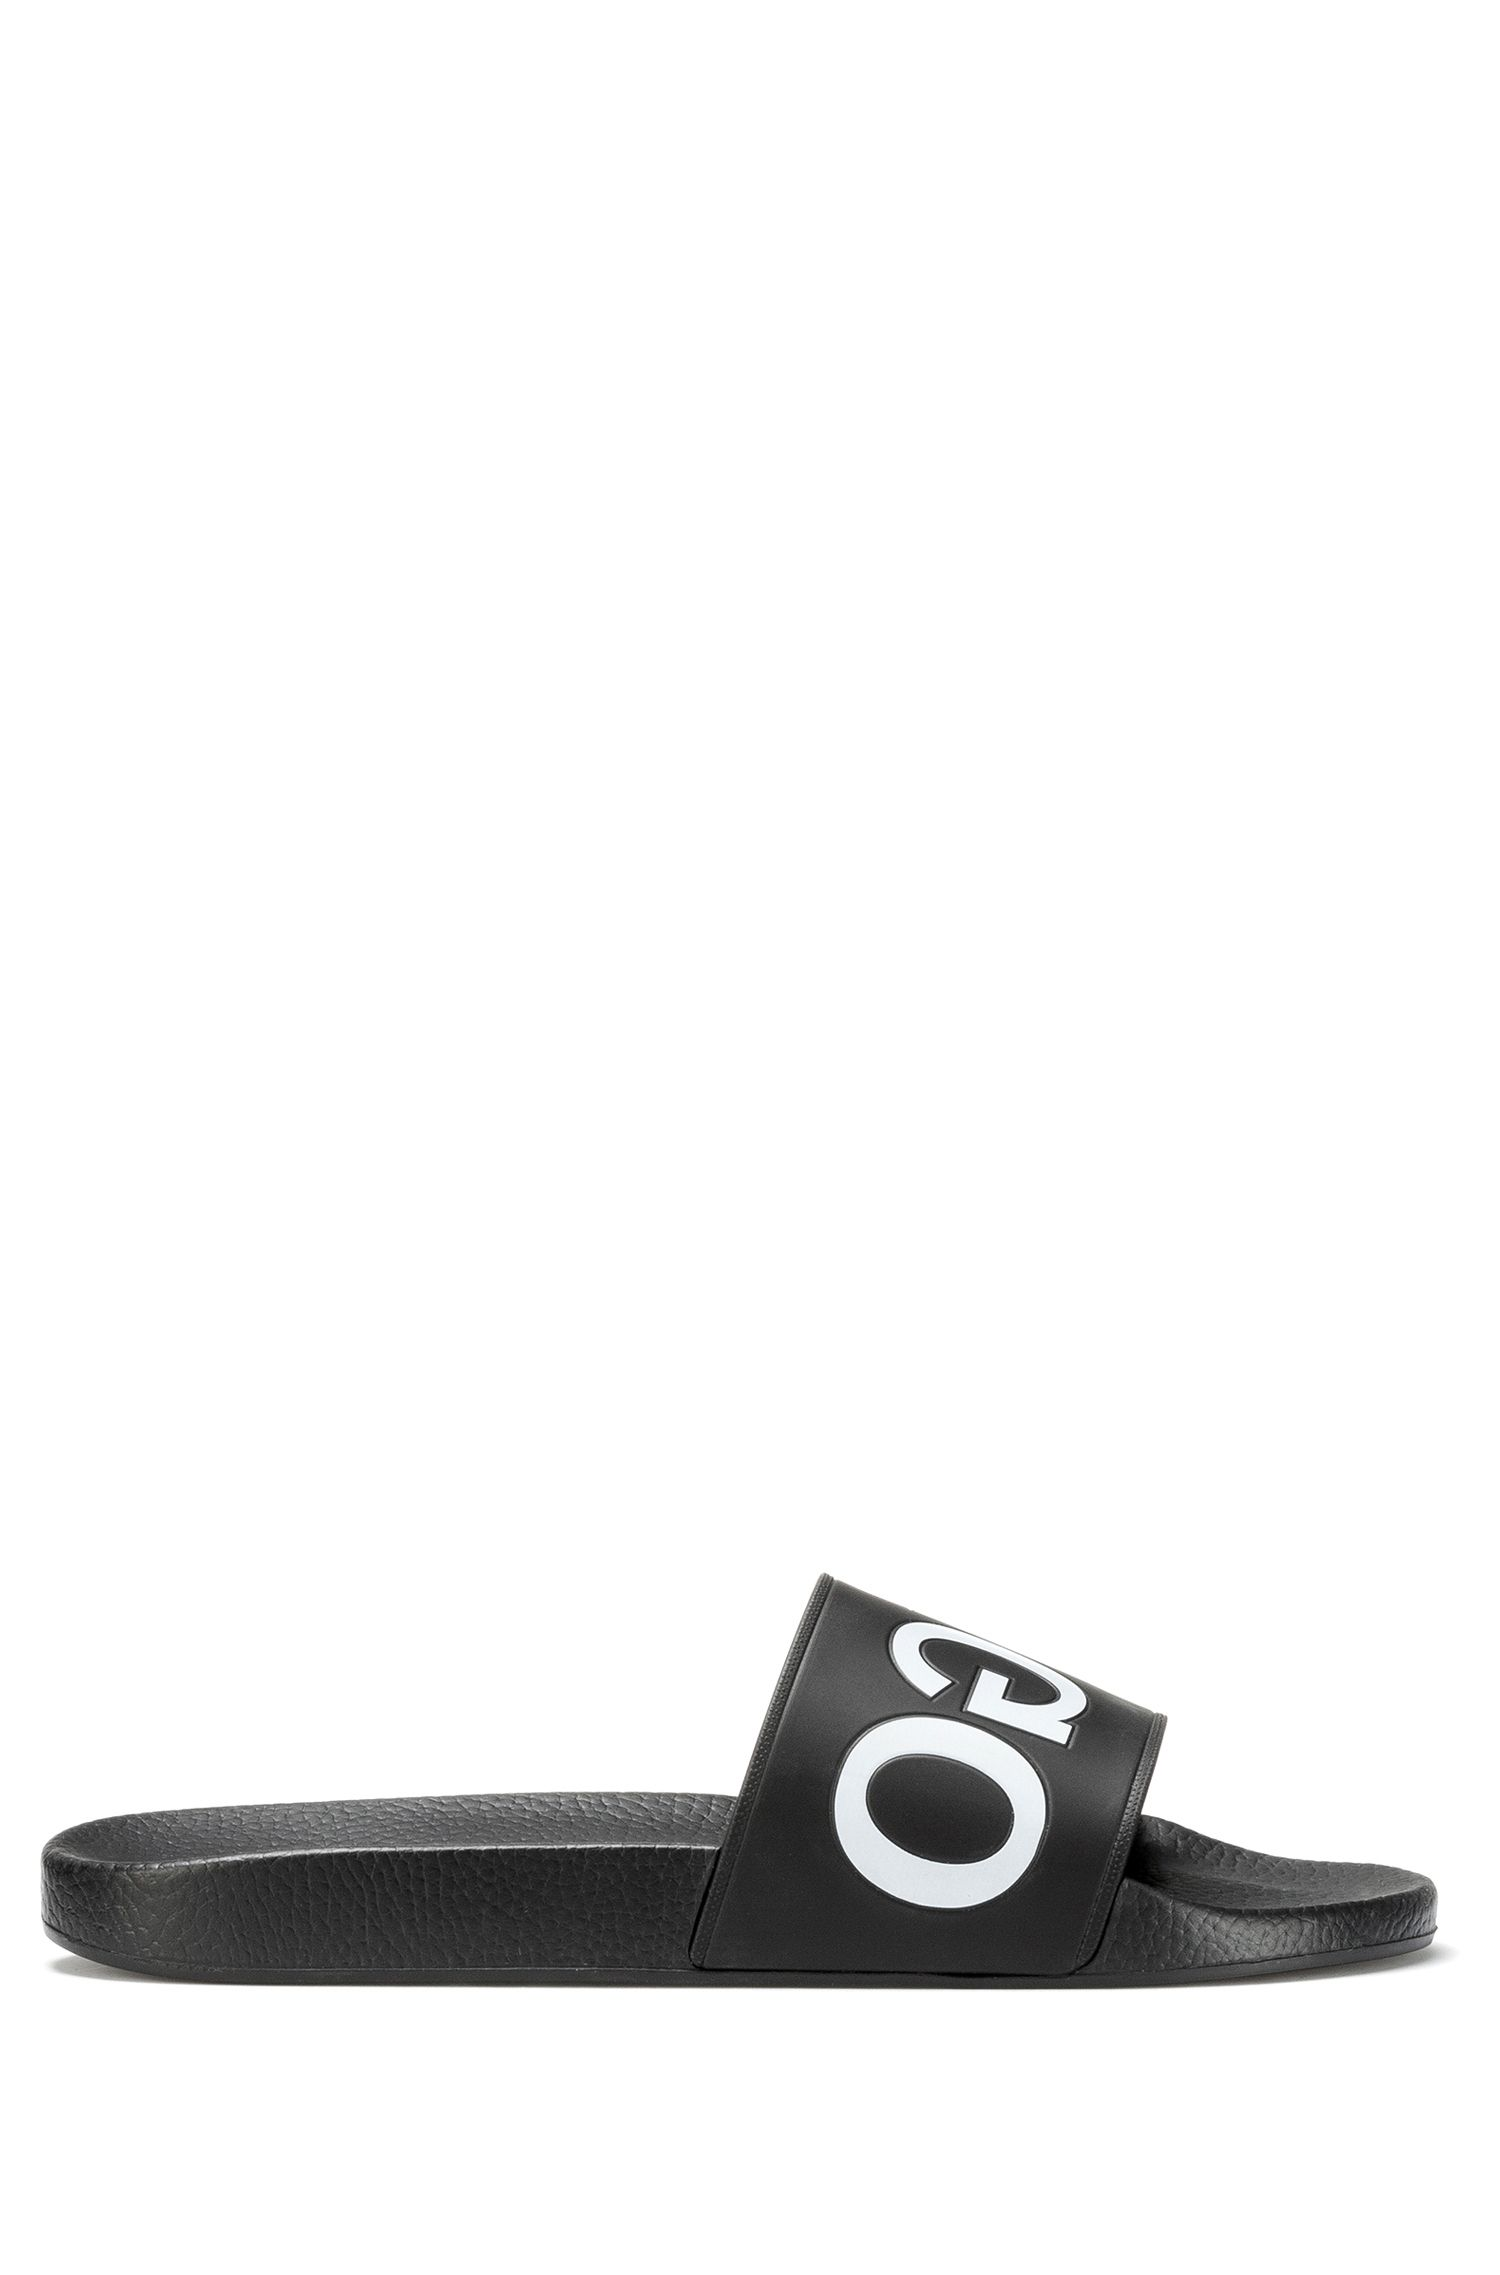 Reverse-logo pool slider sandals, Black